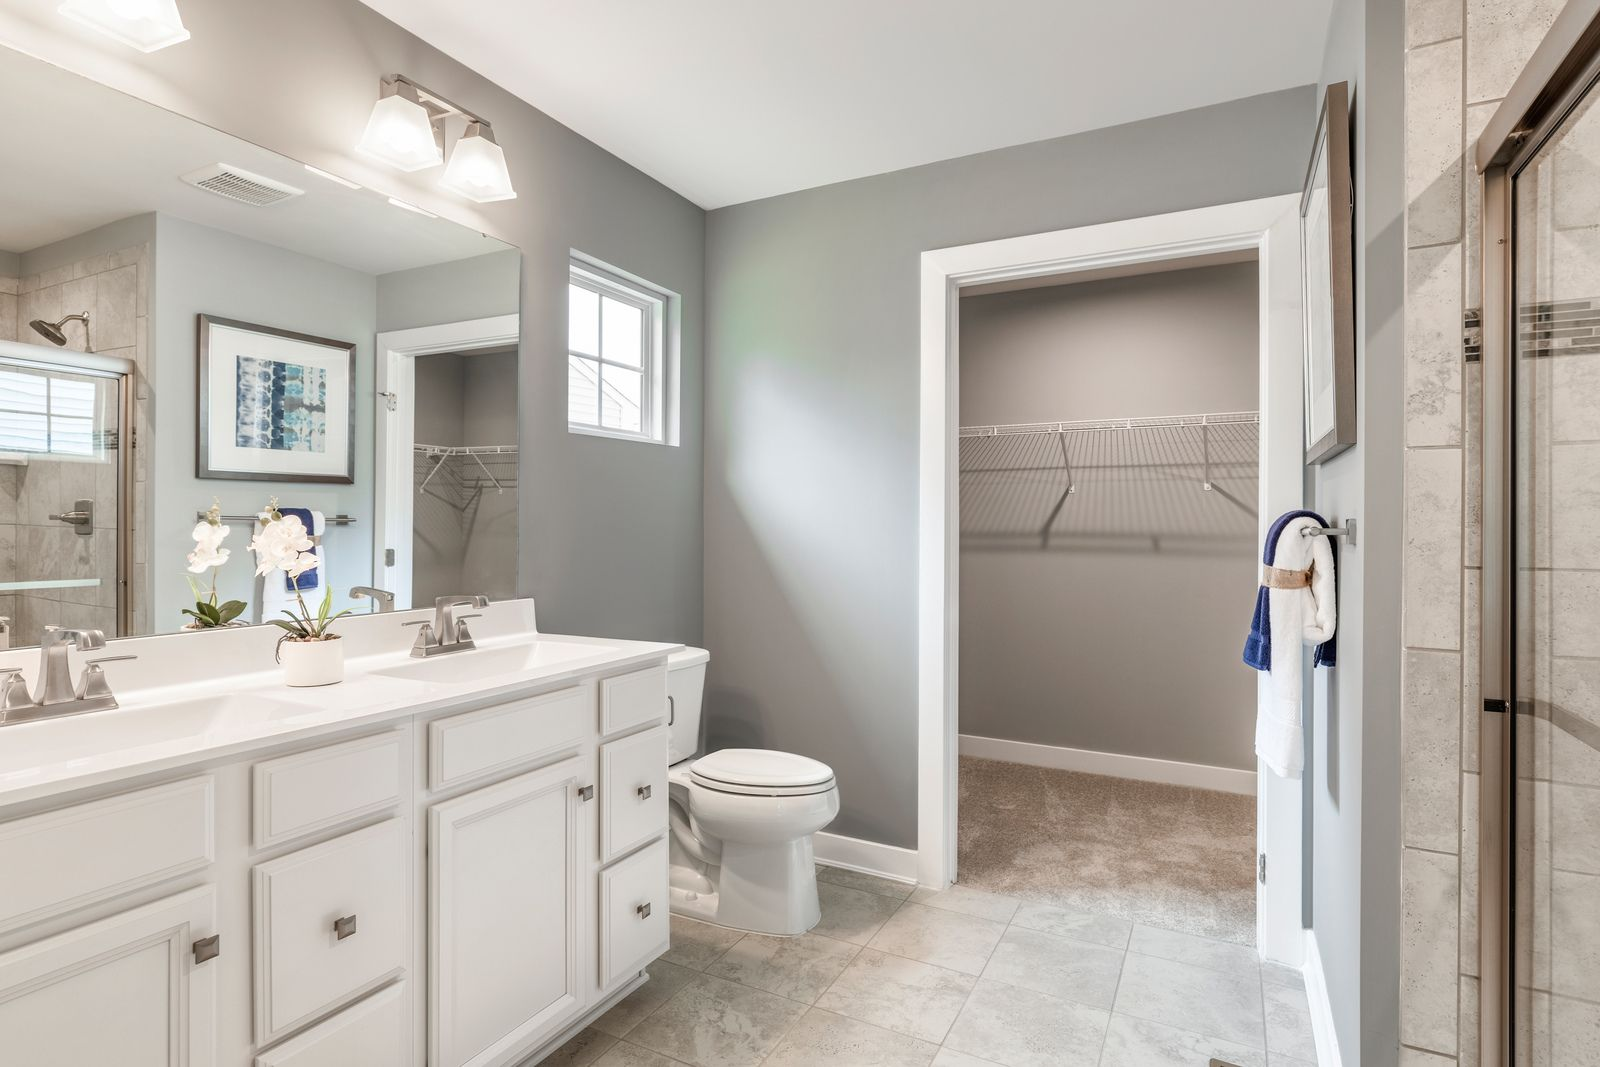 Bathroom featured in the Dominica Spring By Ryan Homes in Columbus, OH